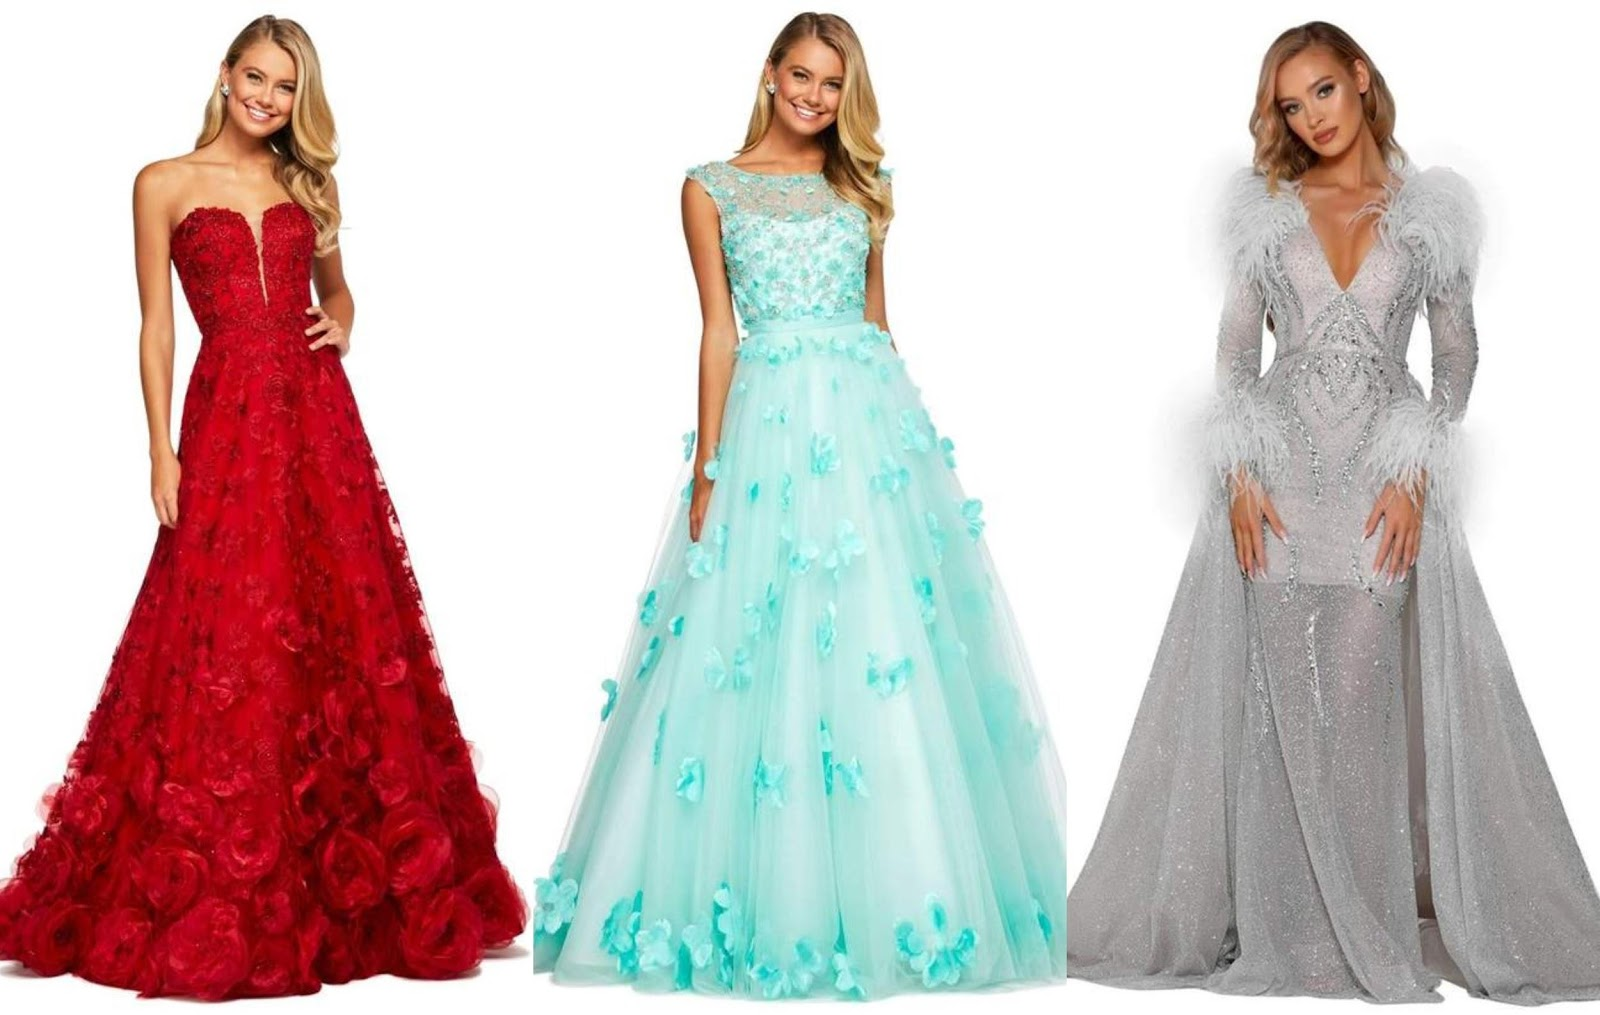 5 Important Questions to Ask Yourself While Shopping for Prom Dresses